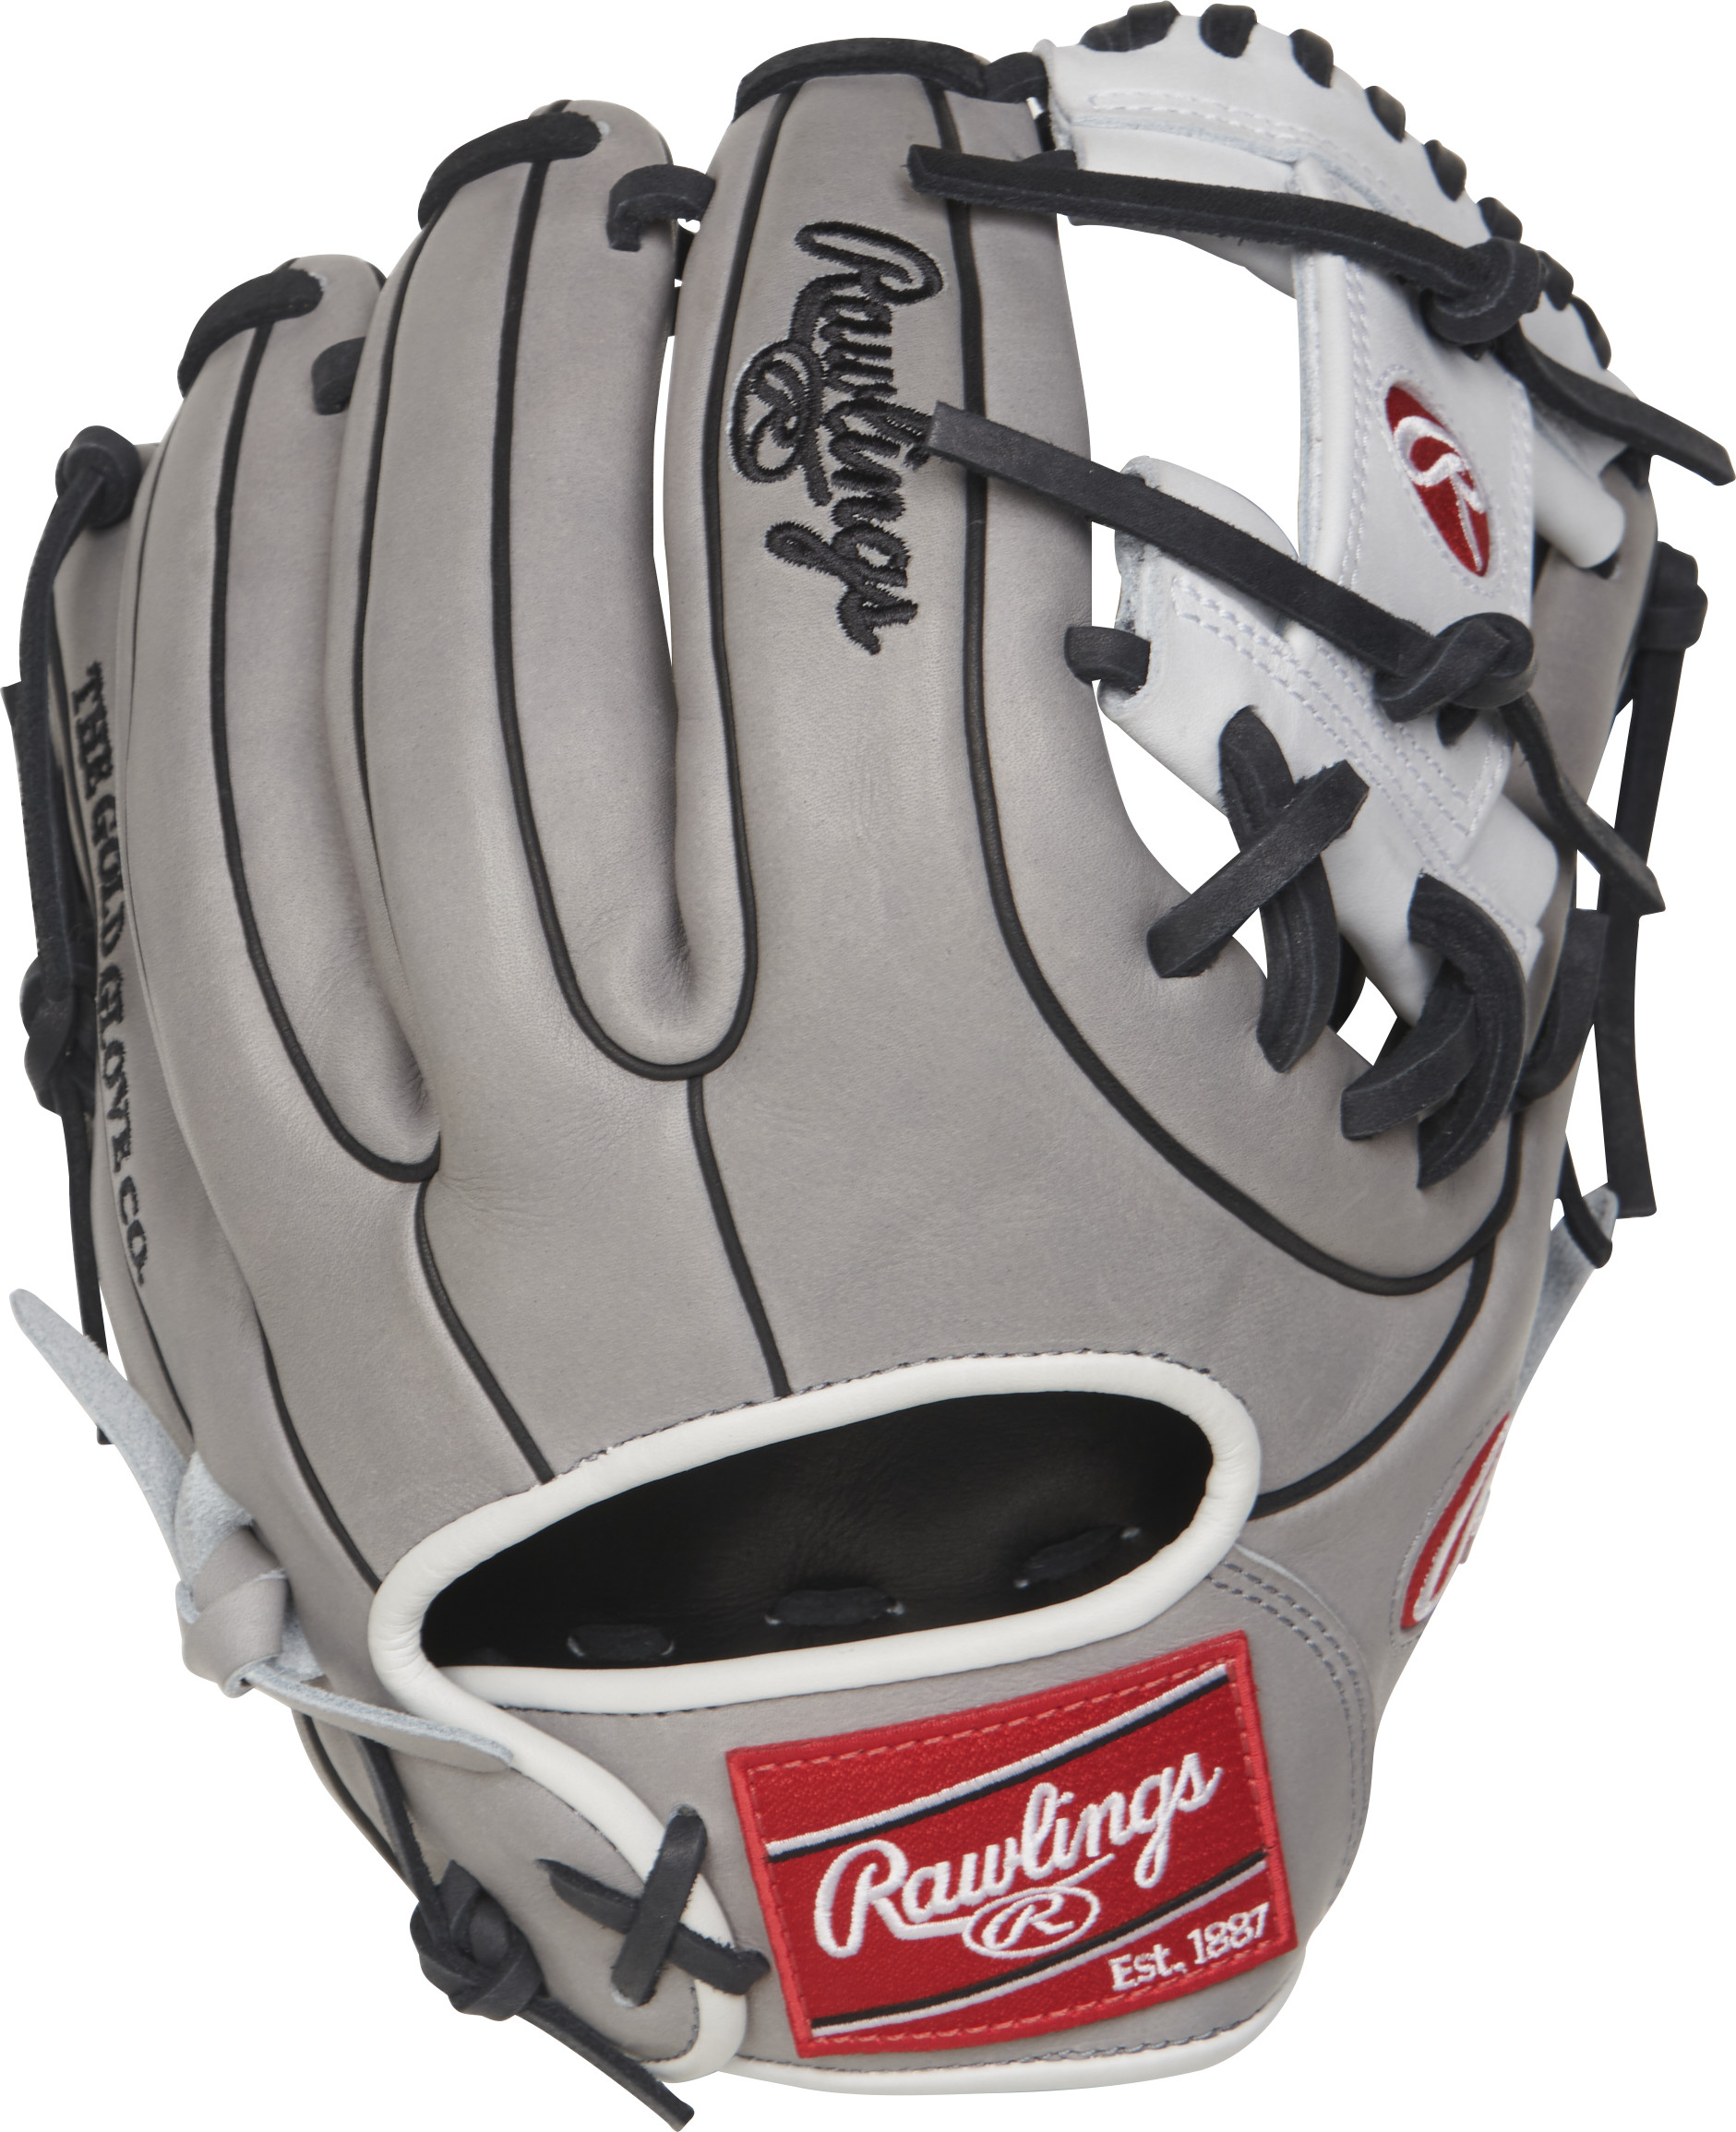 http://www.bestbatdeals.com/images/gloves/rawlings/PRO715SB-2GW-2.jpg